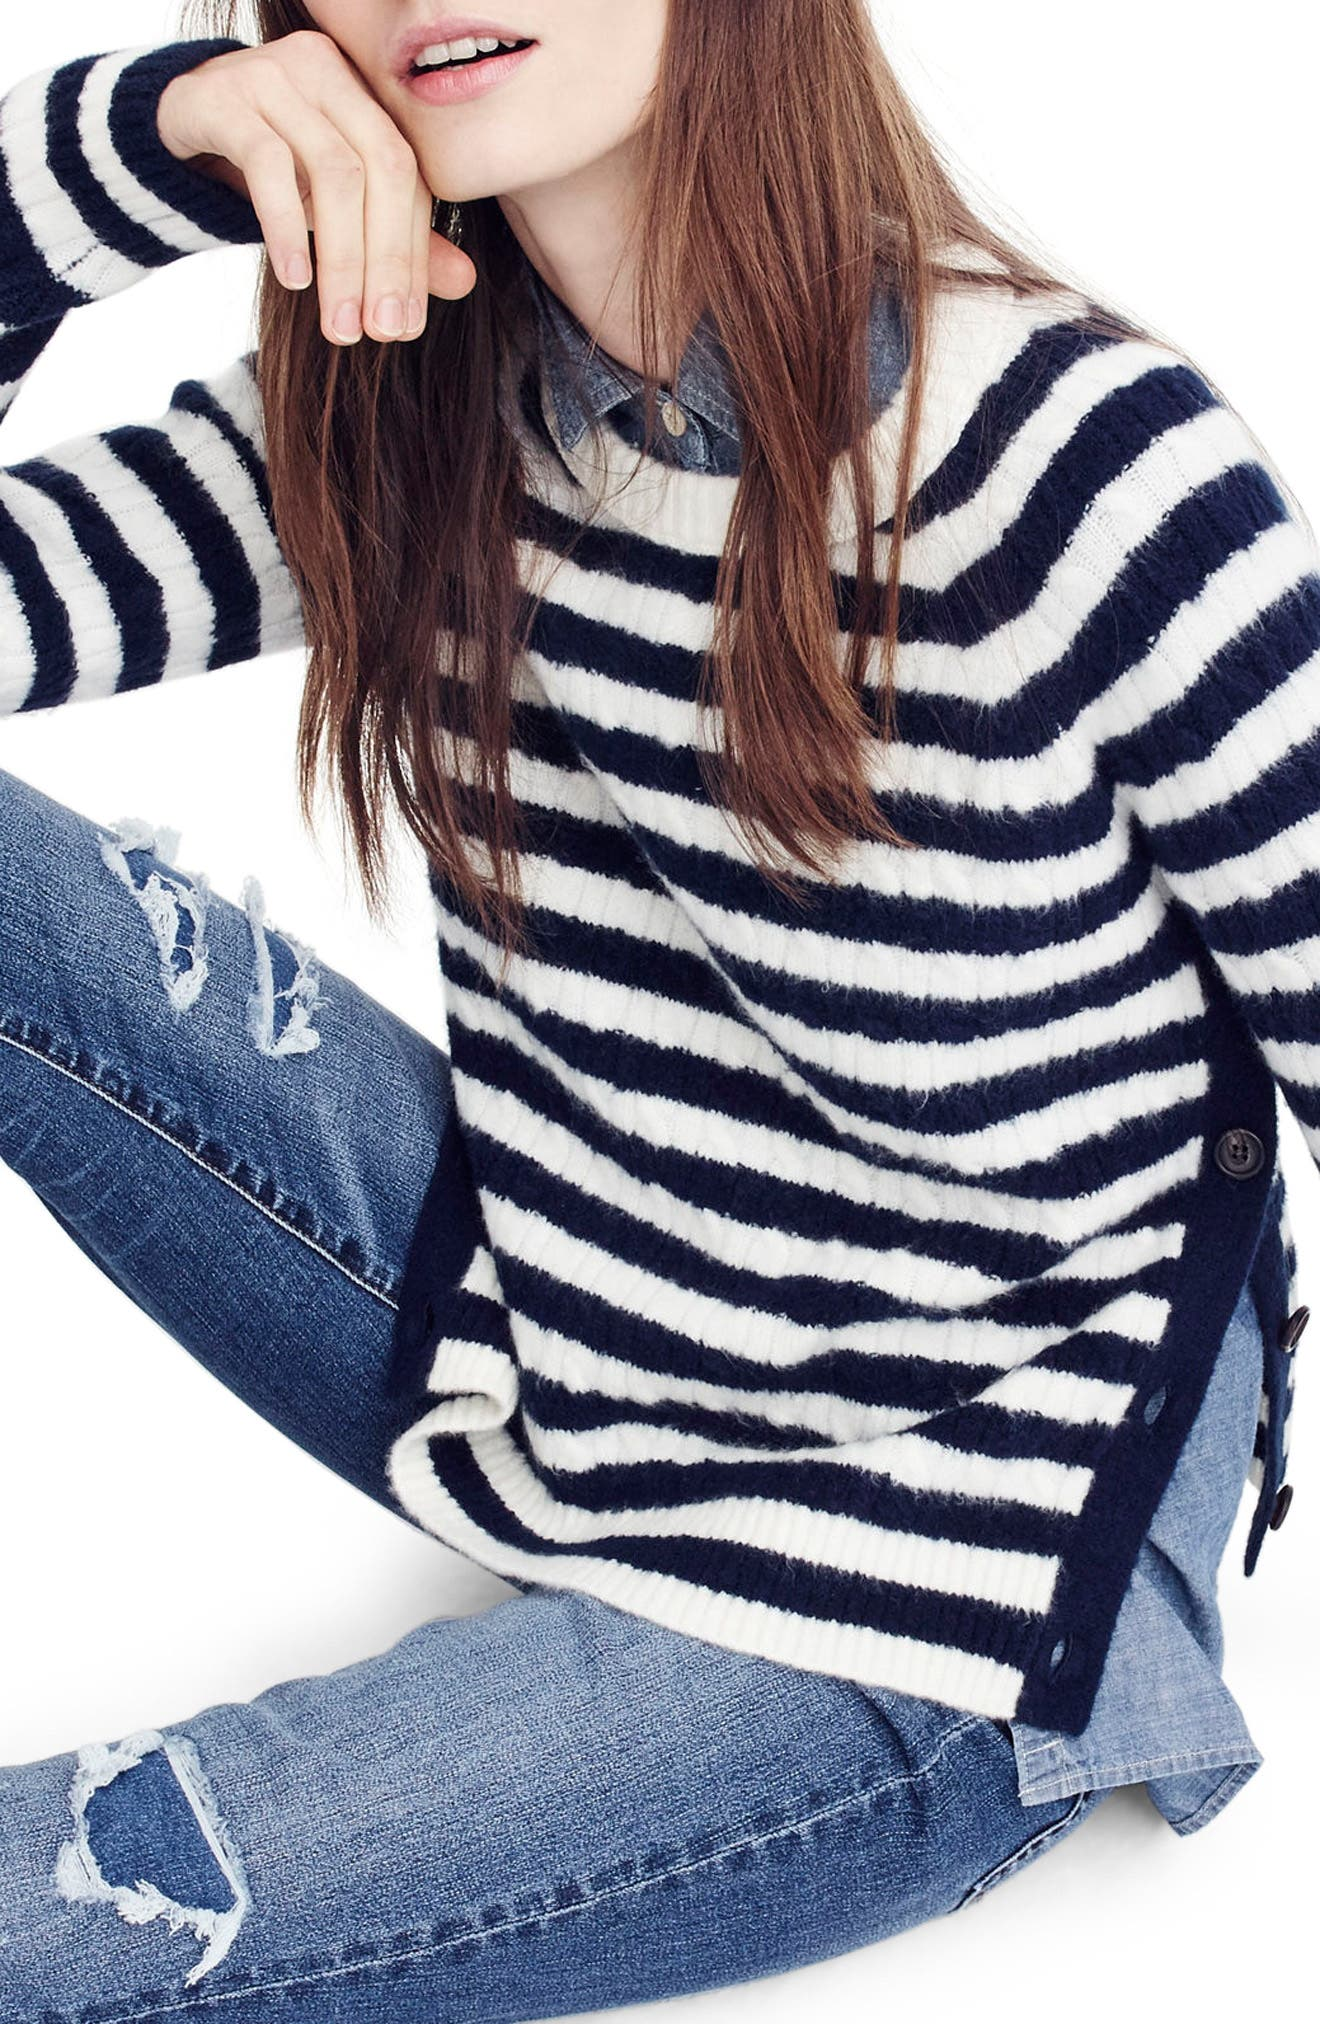 Main Image - J.Crew Stripe Cable Knit Sweater with Buttons